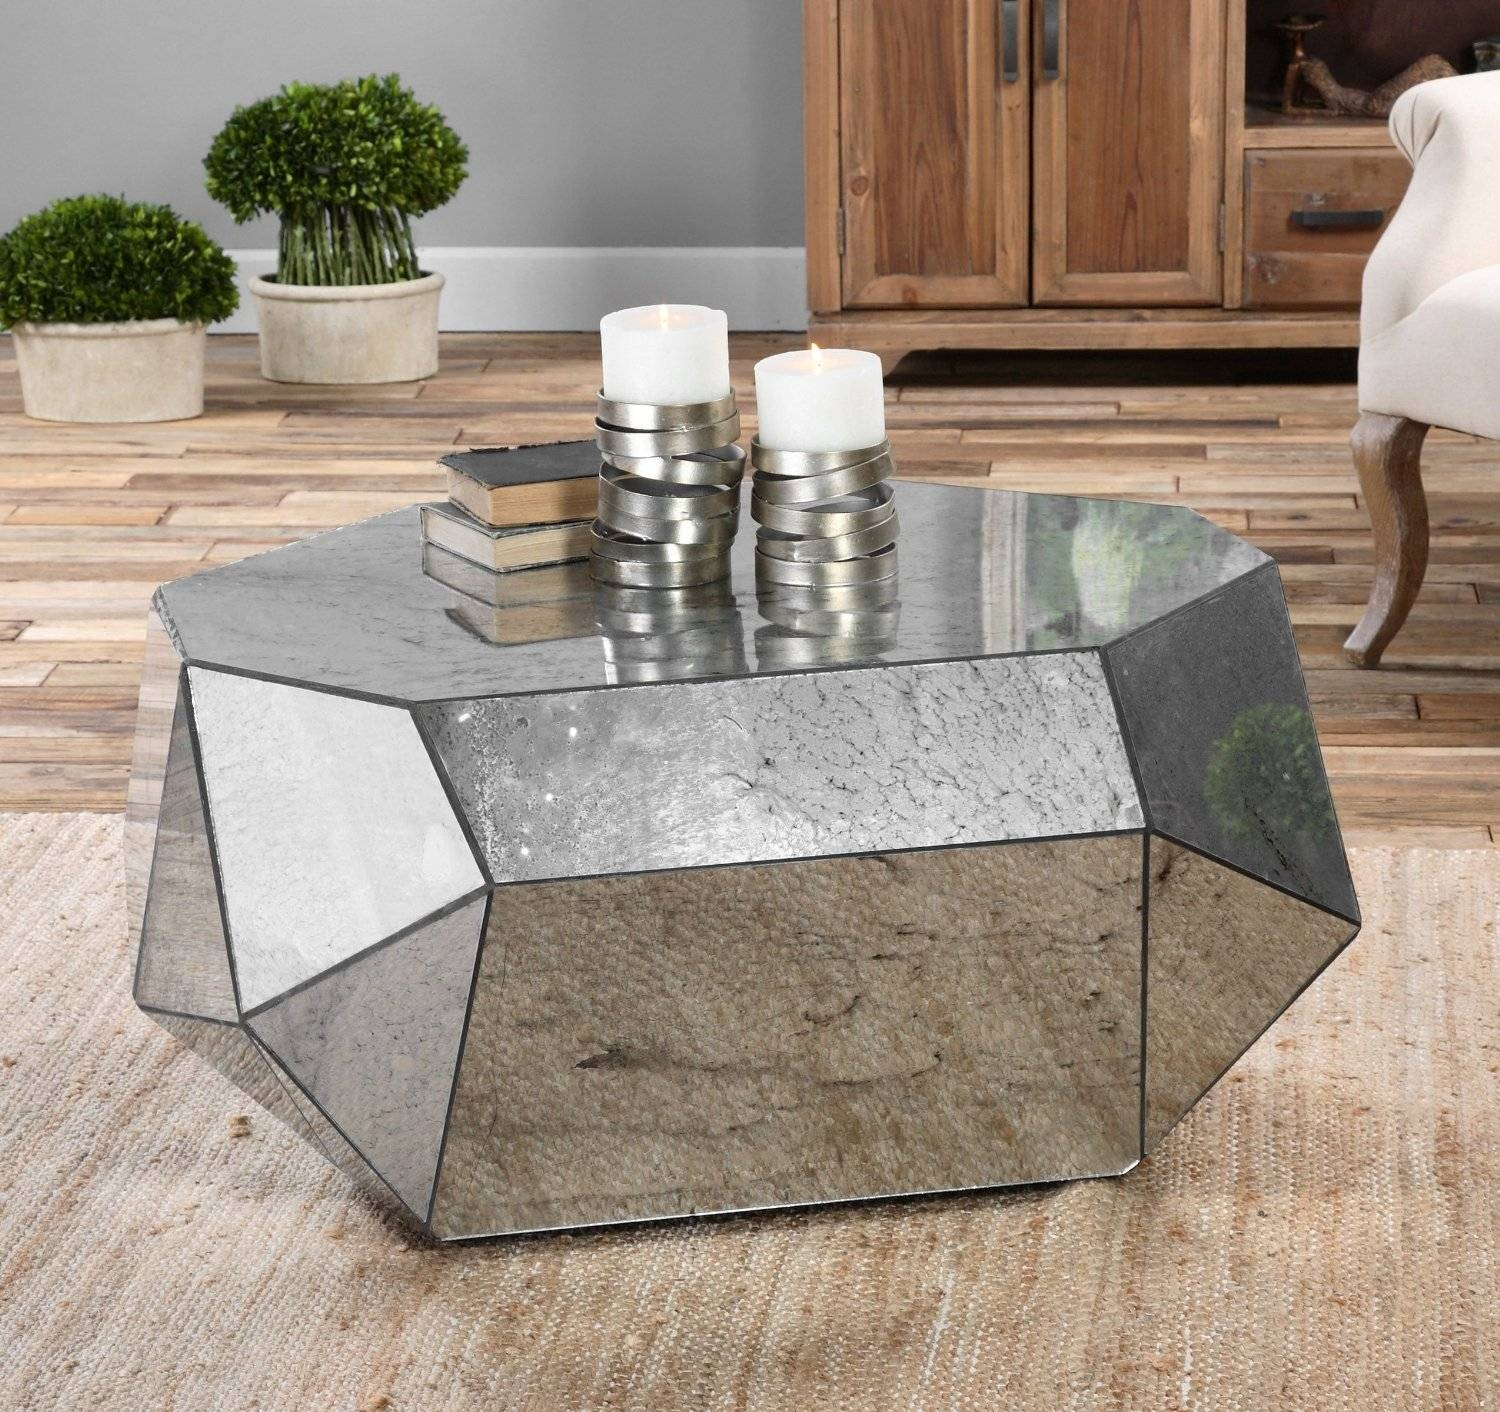 Diy Mirrored Coffee Table With Four Legs Mirror Furn / Thippo within Small Mirrored Coffee Tables (Image 6 of 30)